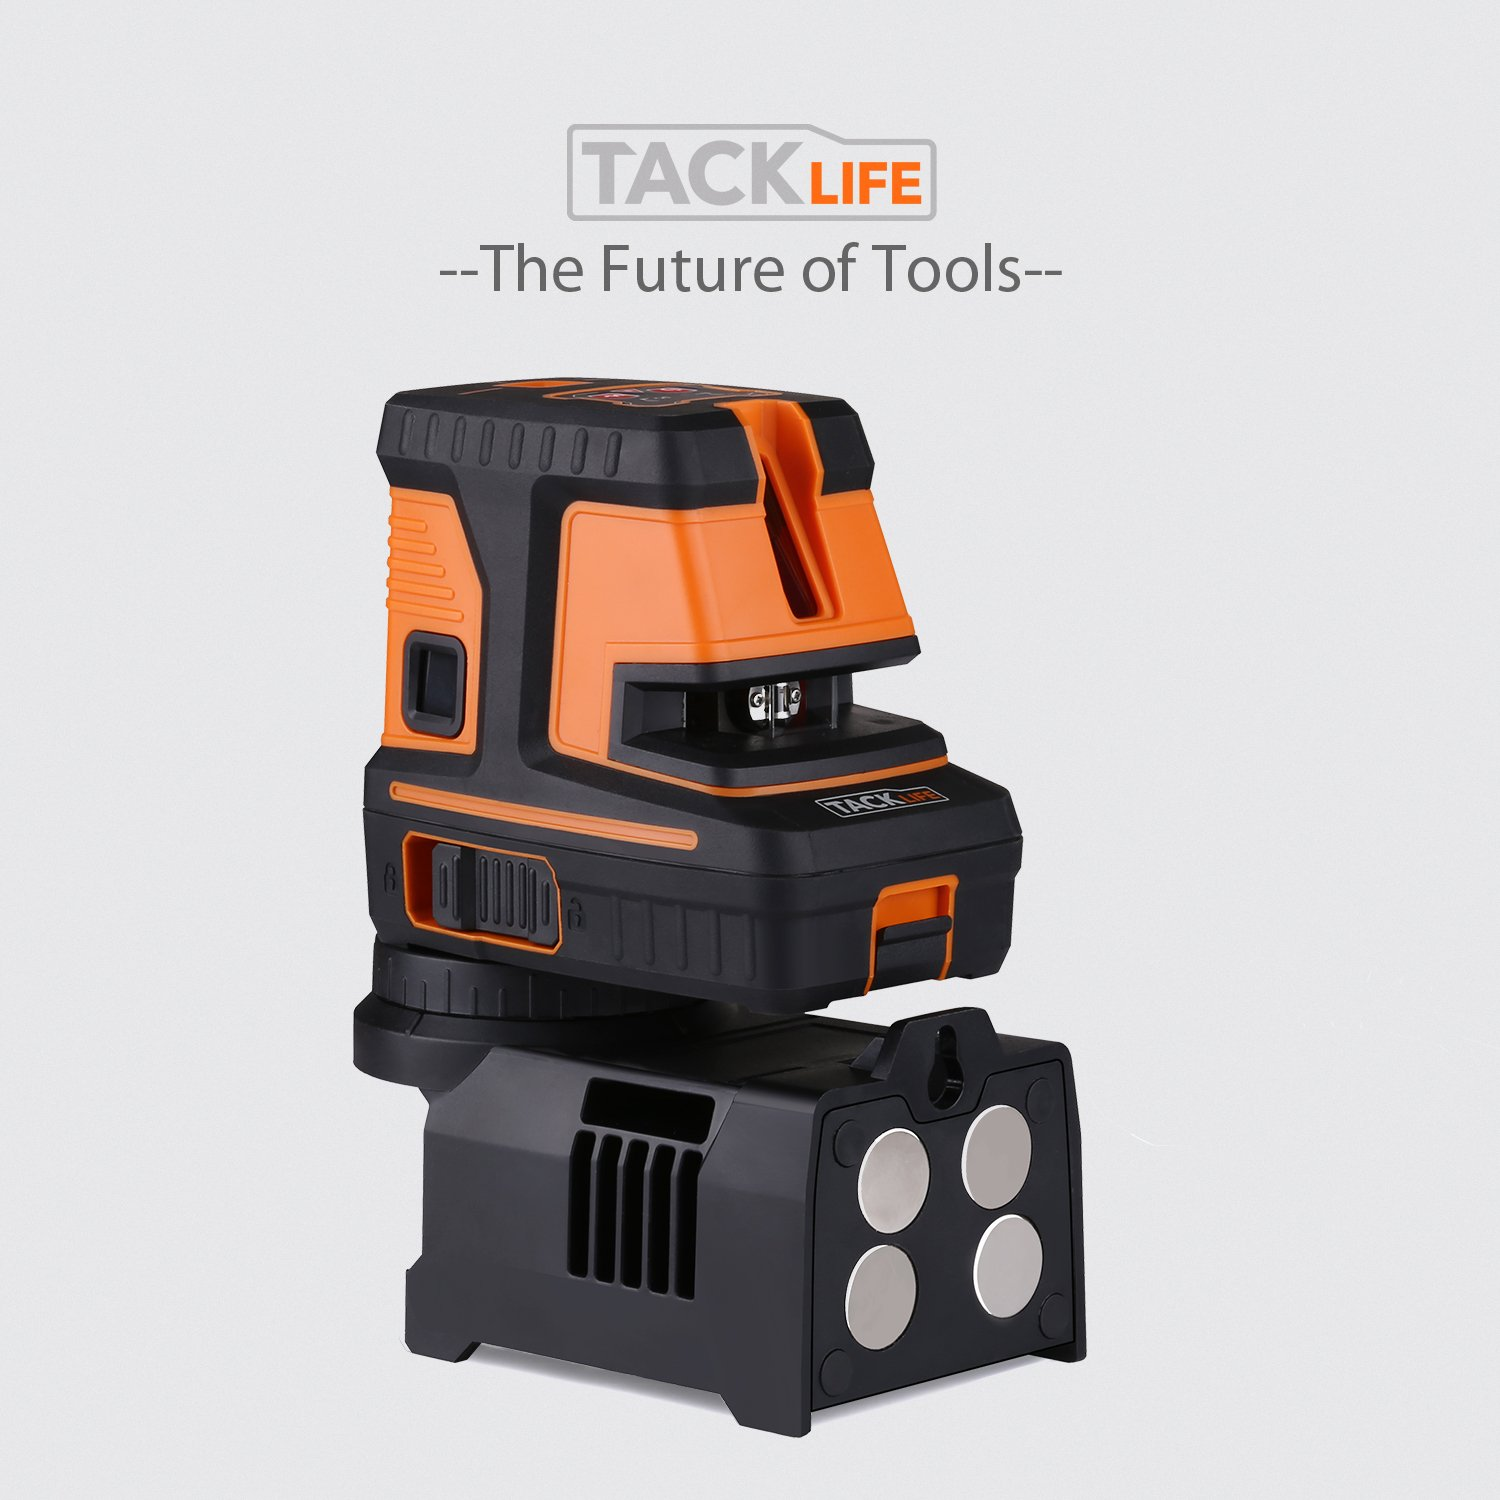 Enhanced Strong Magnetic Base Tacklife SC-L06 3-Point Alignment Laser Level Self Leveling with Horizontal//Vertical Line and Cross-Line Batteries Included Soft Carrying Pouch